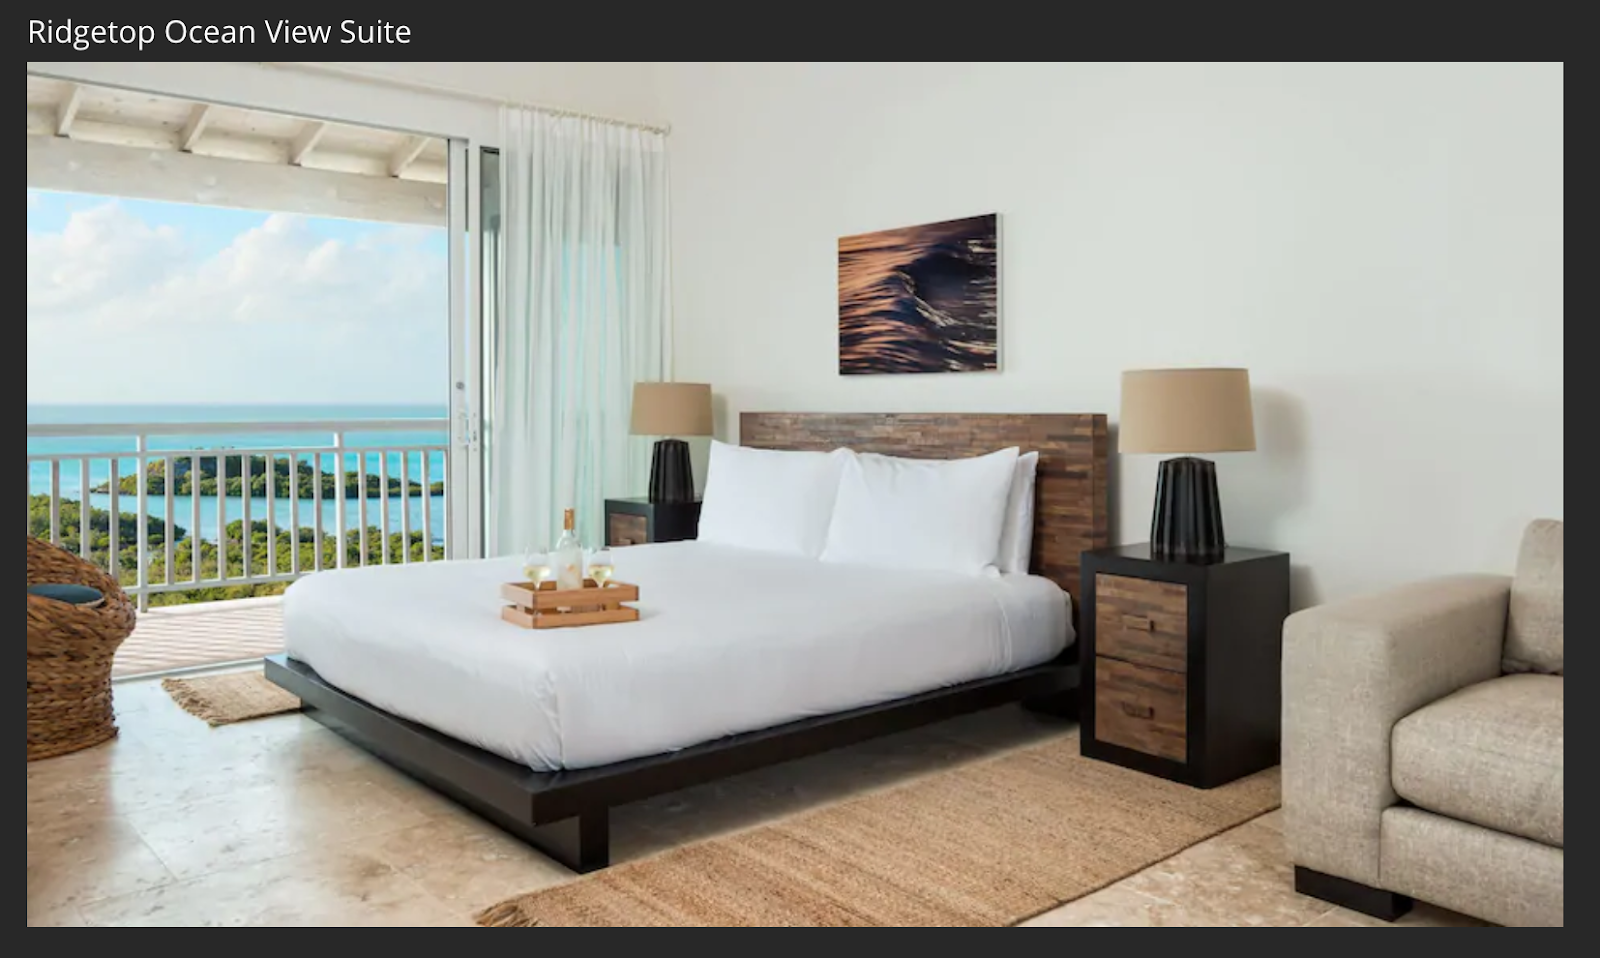 Sailrock Ridgetop Ocean view suite room